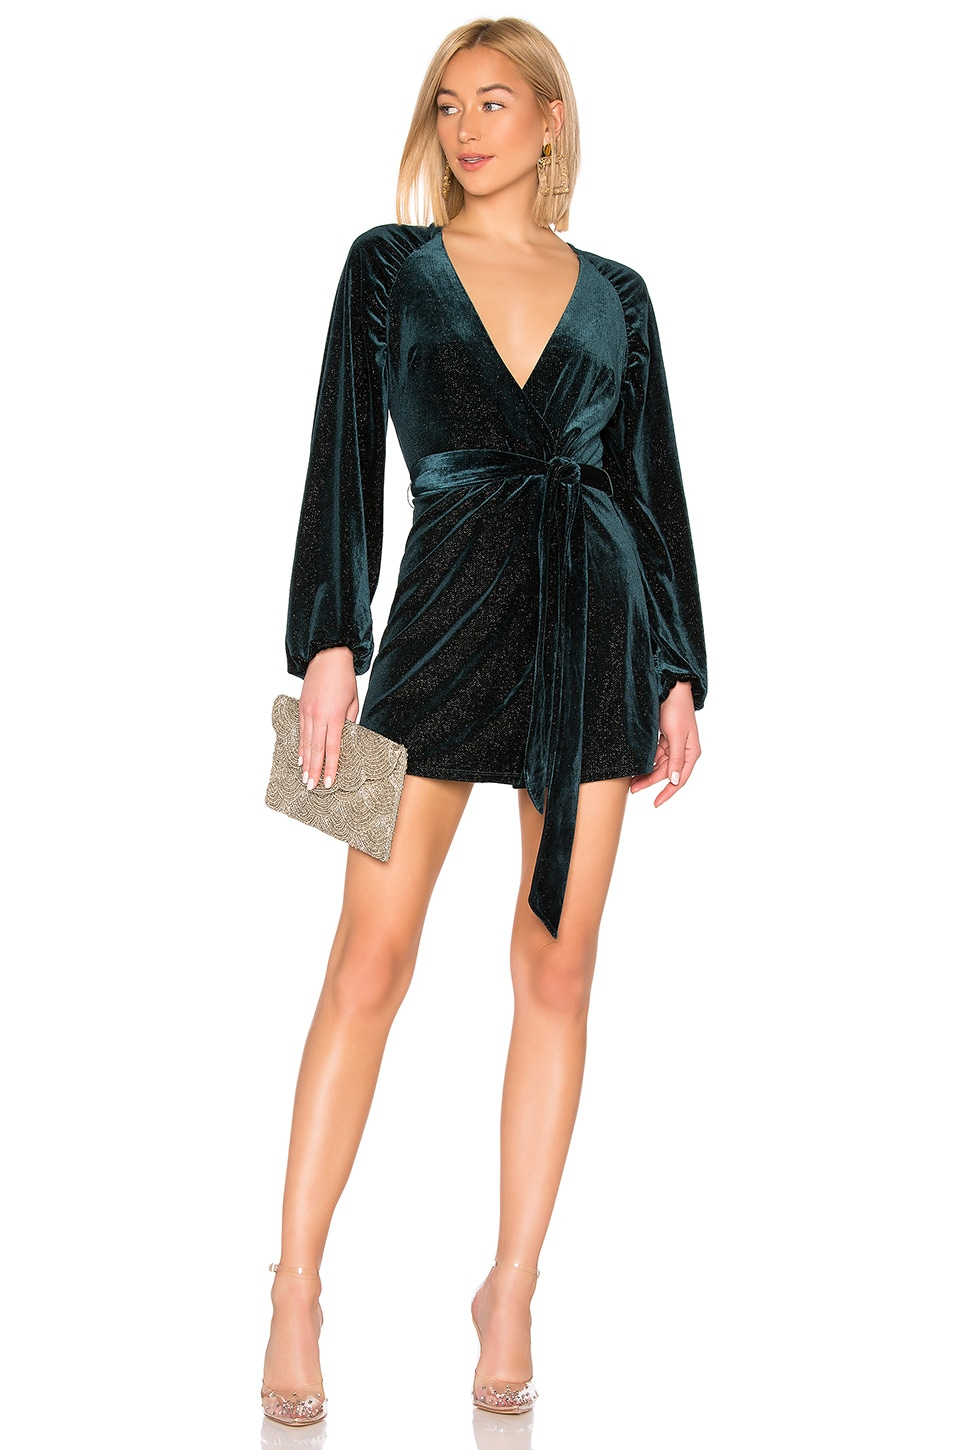 Lovers + Friends Addilyn Wrap Dress in Deep Emerald